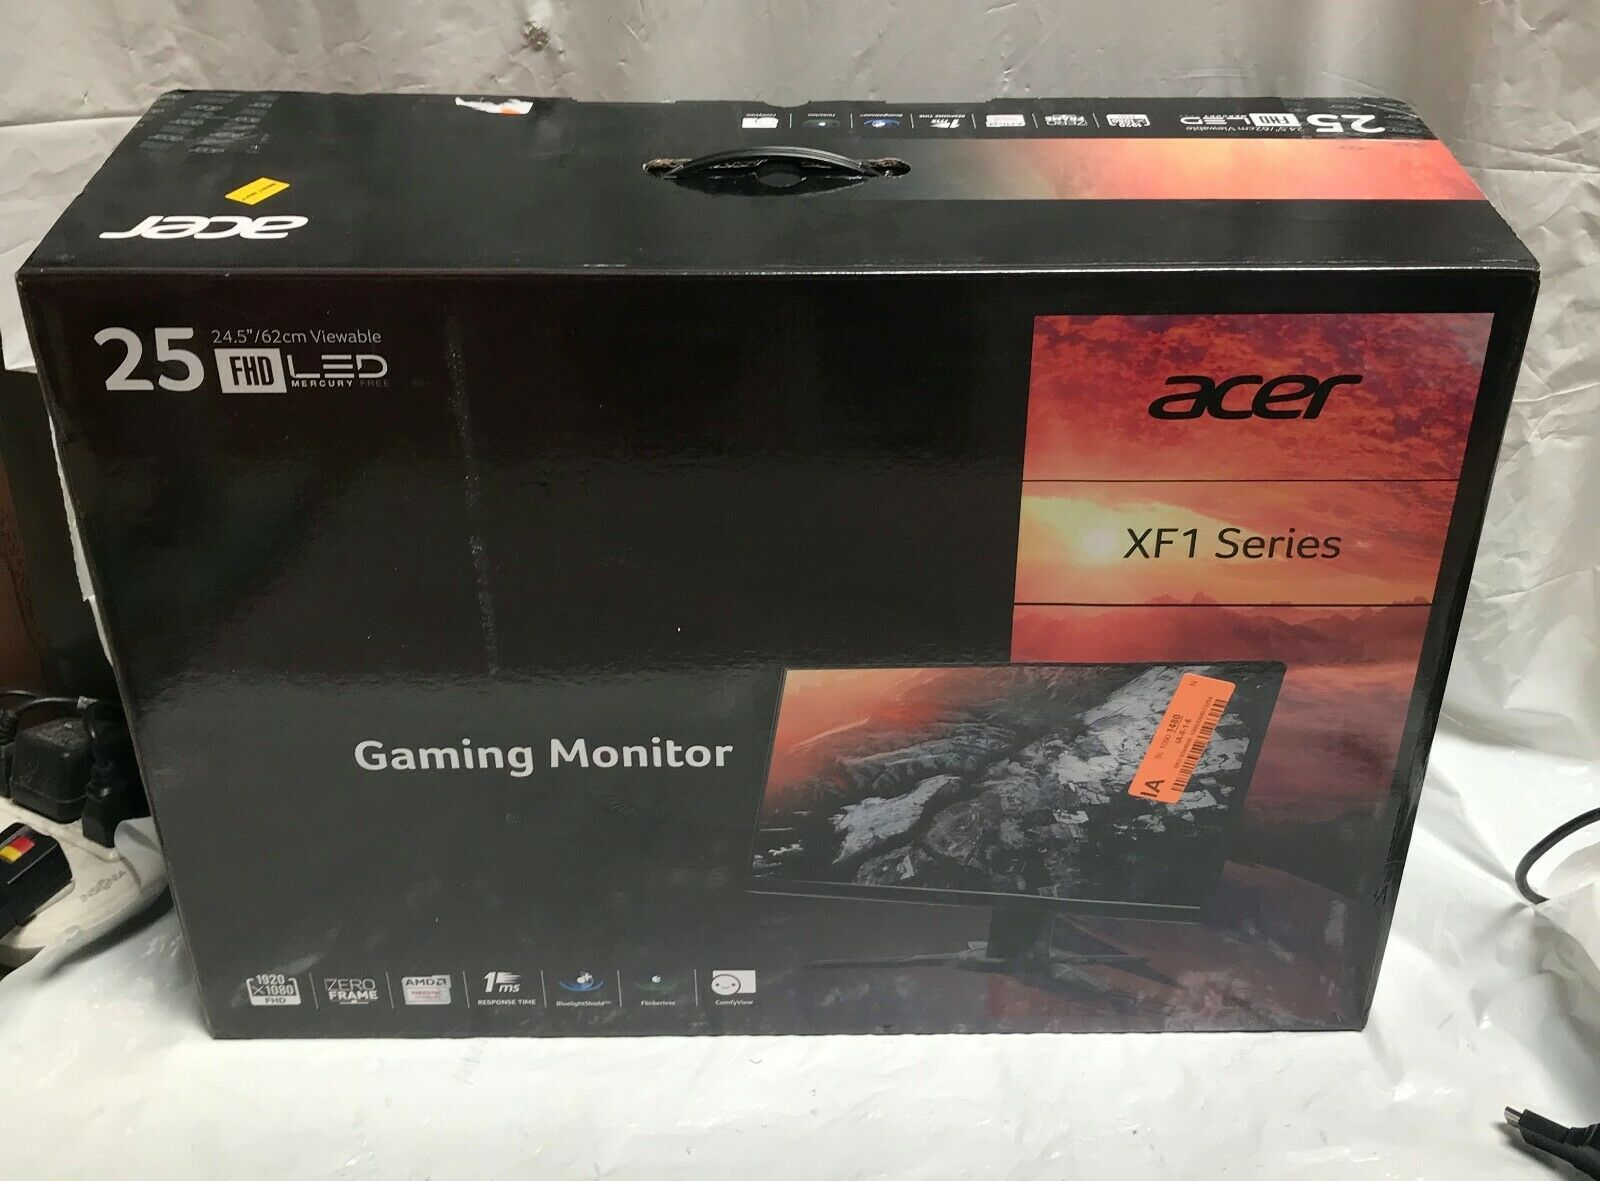 Acer Xf251q 24 5 Fhd 1920 X 1080 Tn Monitor With Amd Freesync Technology For Sale Online